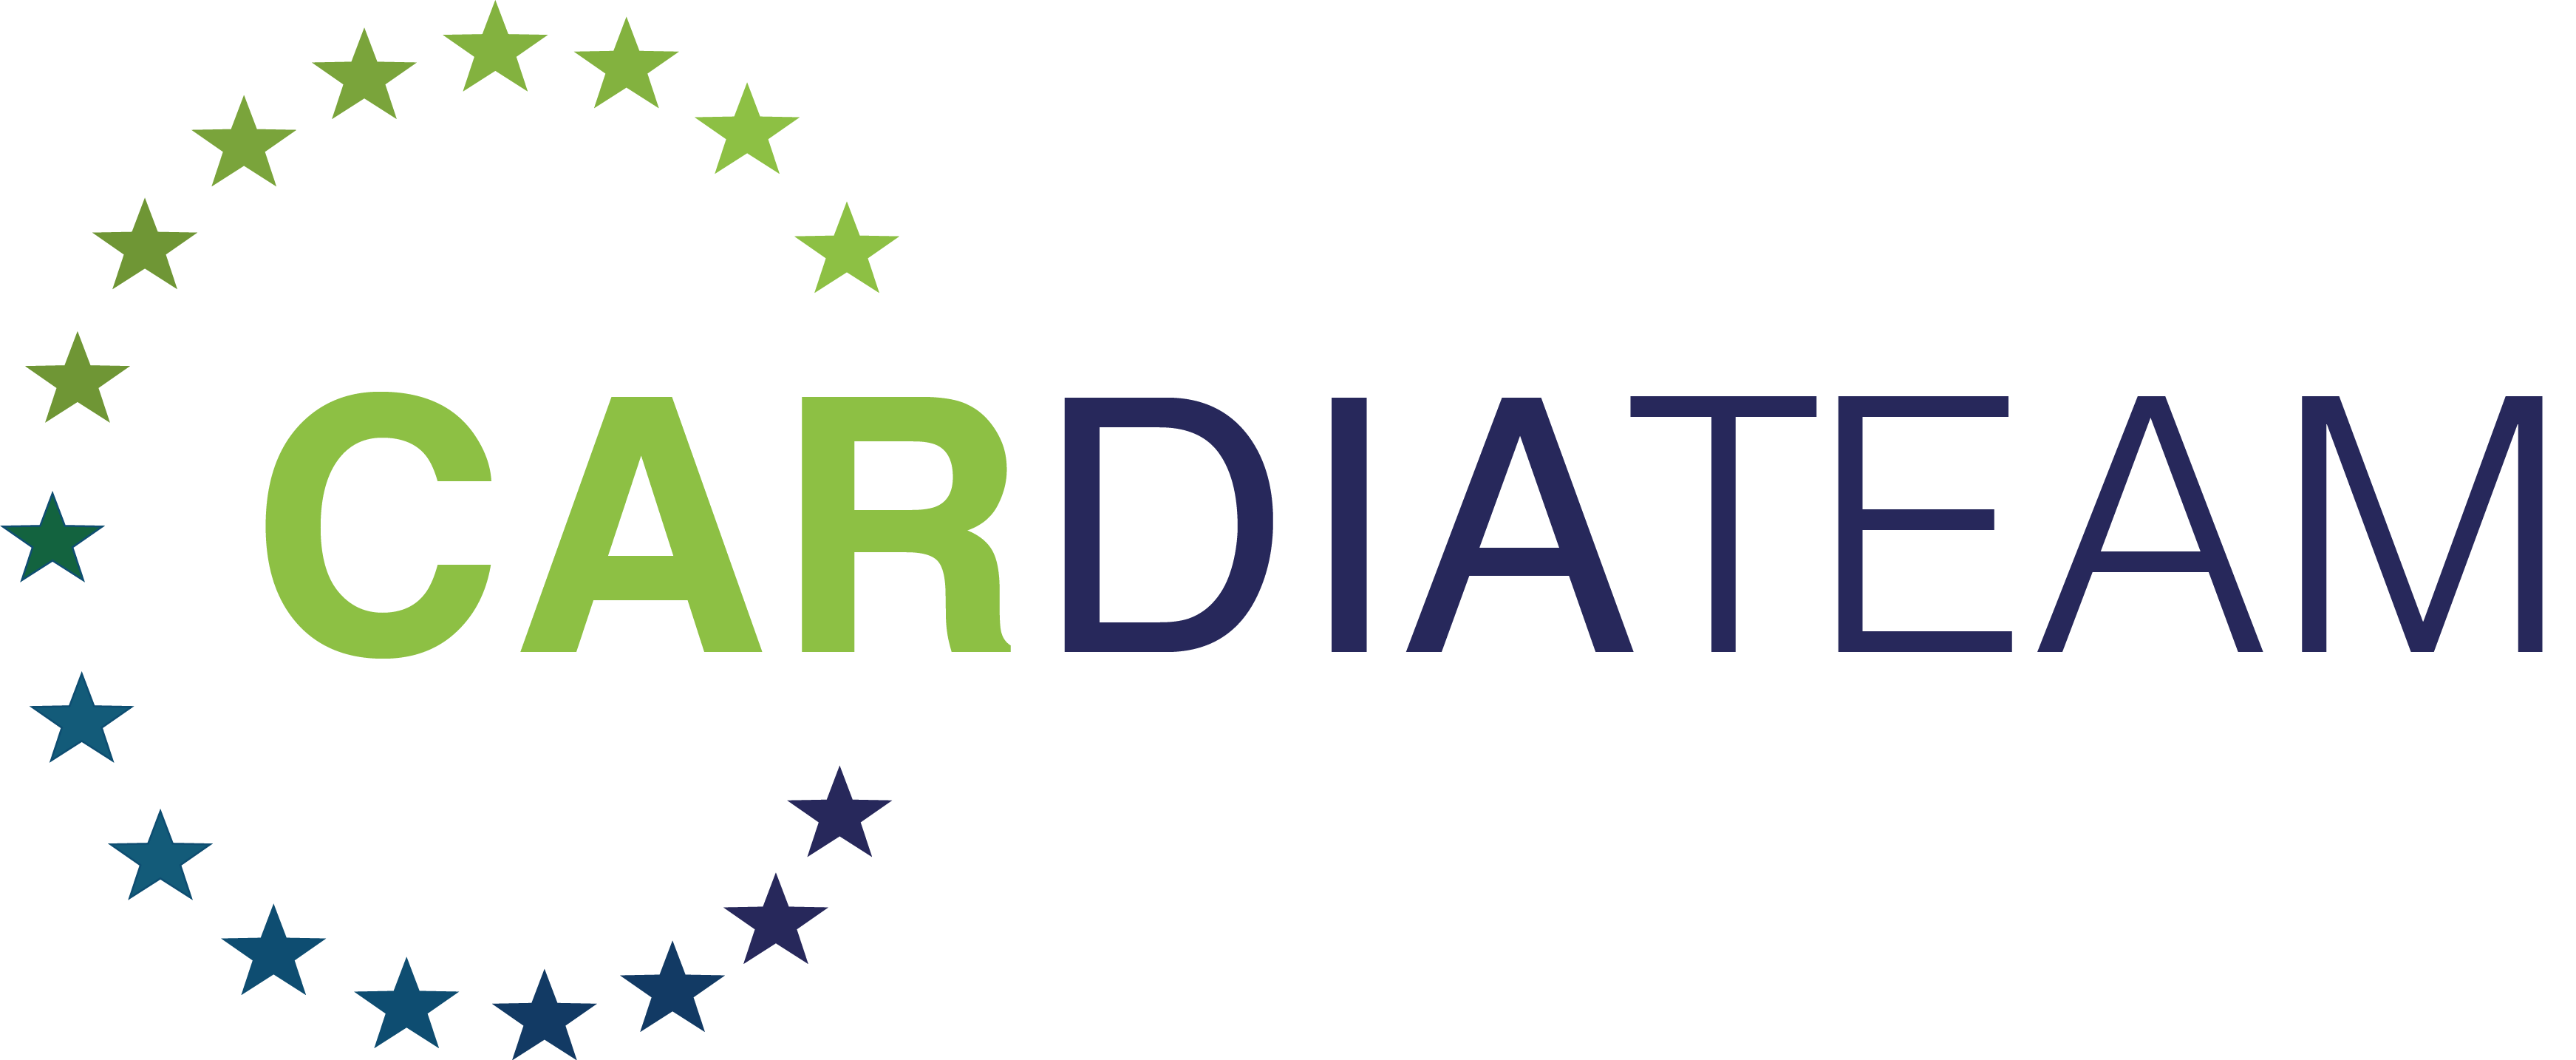 CARDIATEAM logo